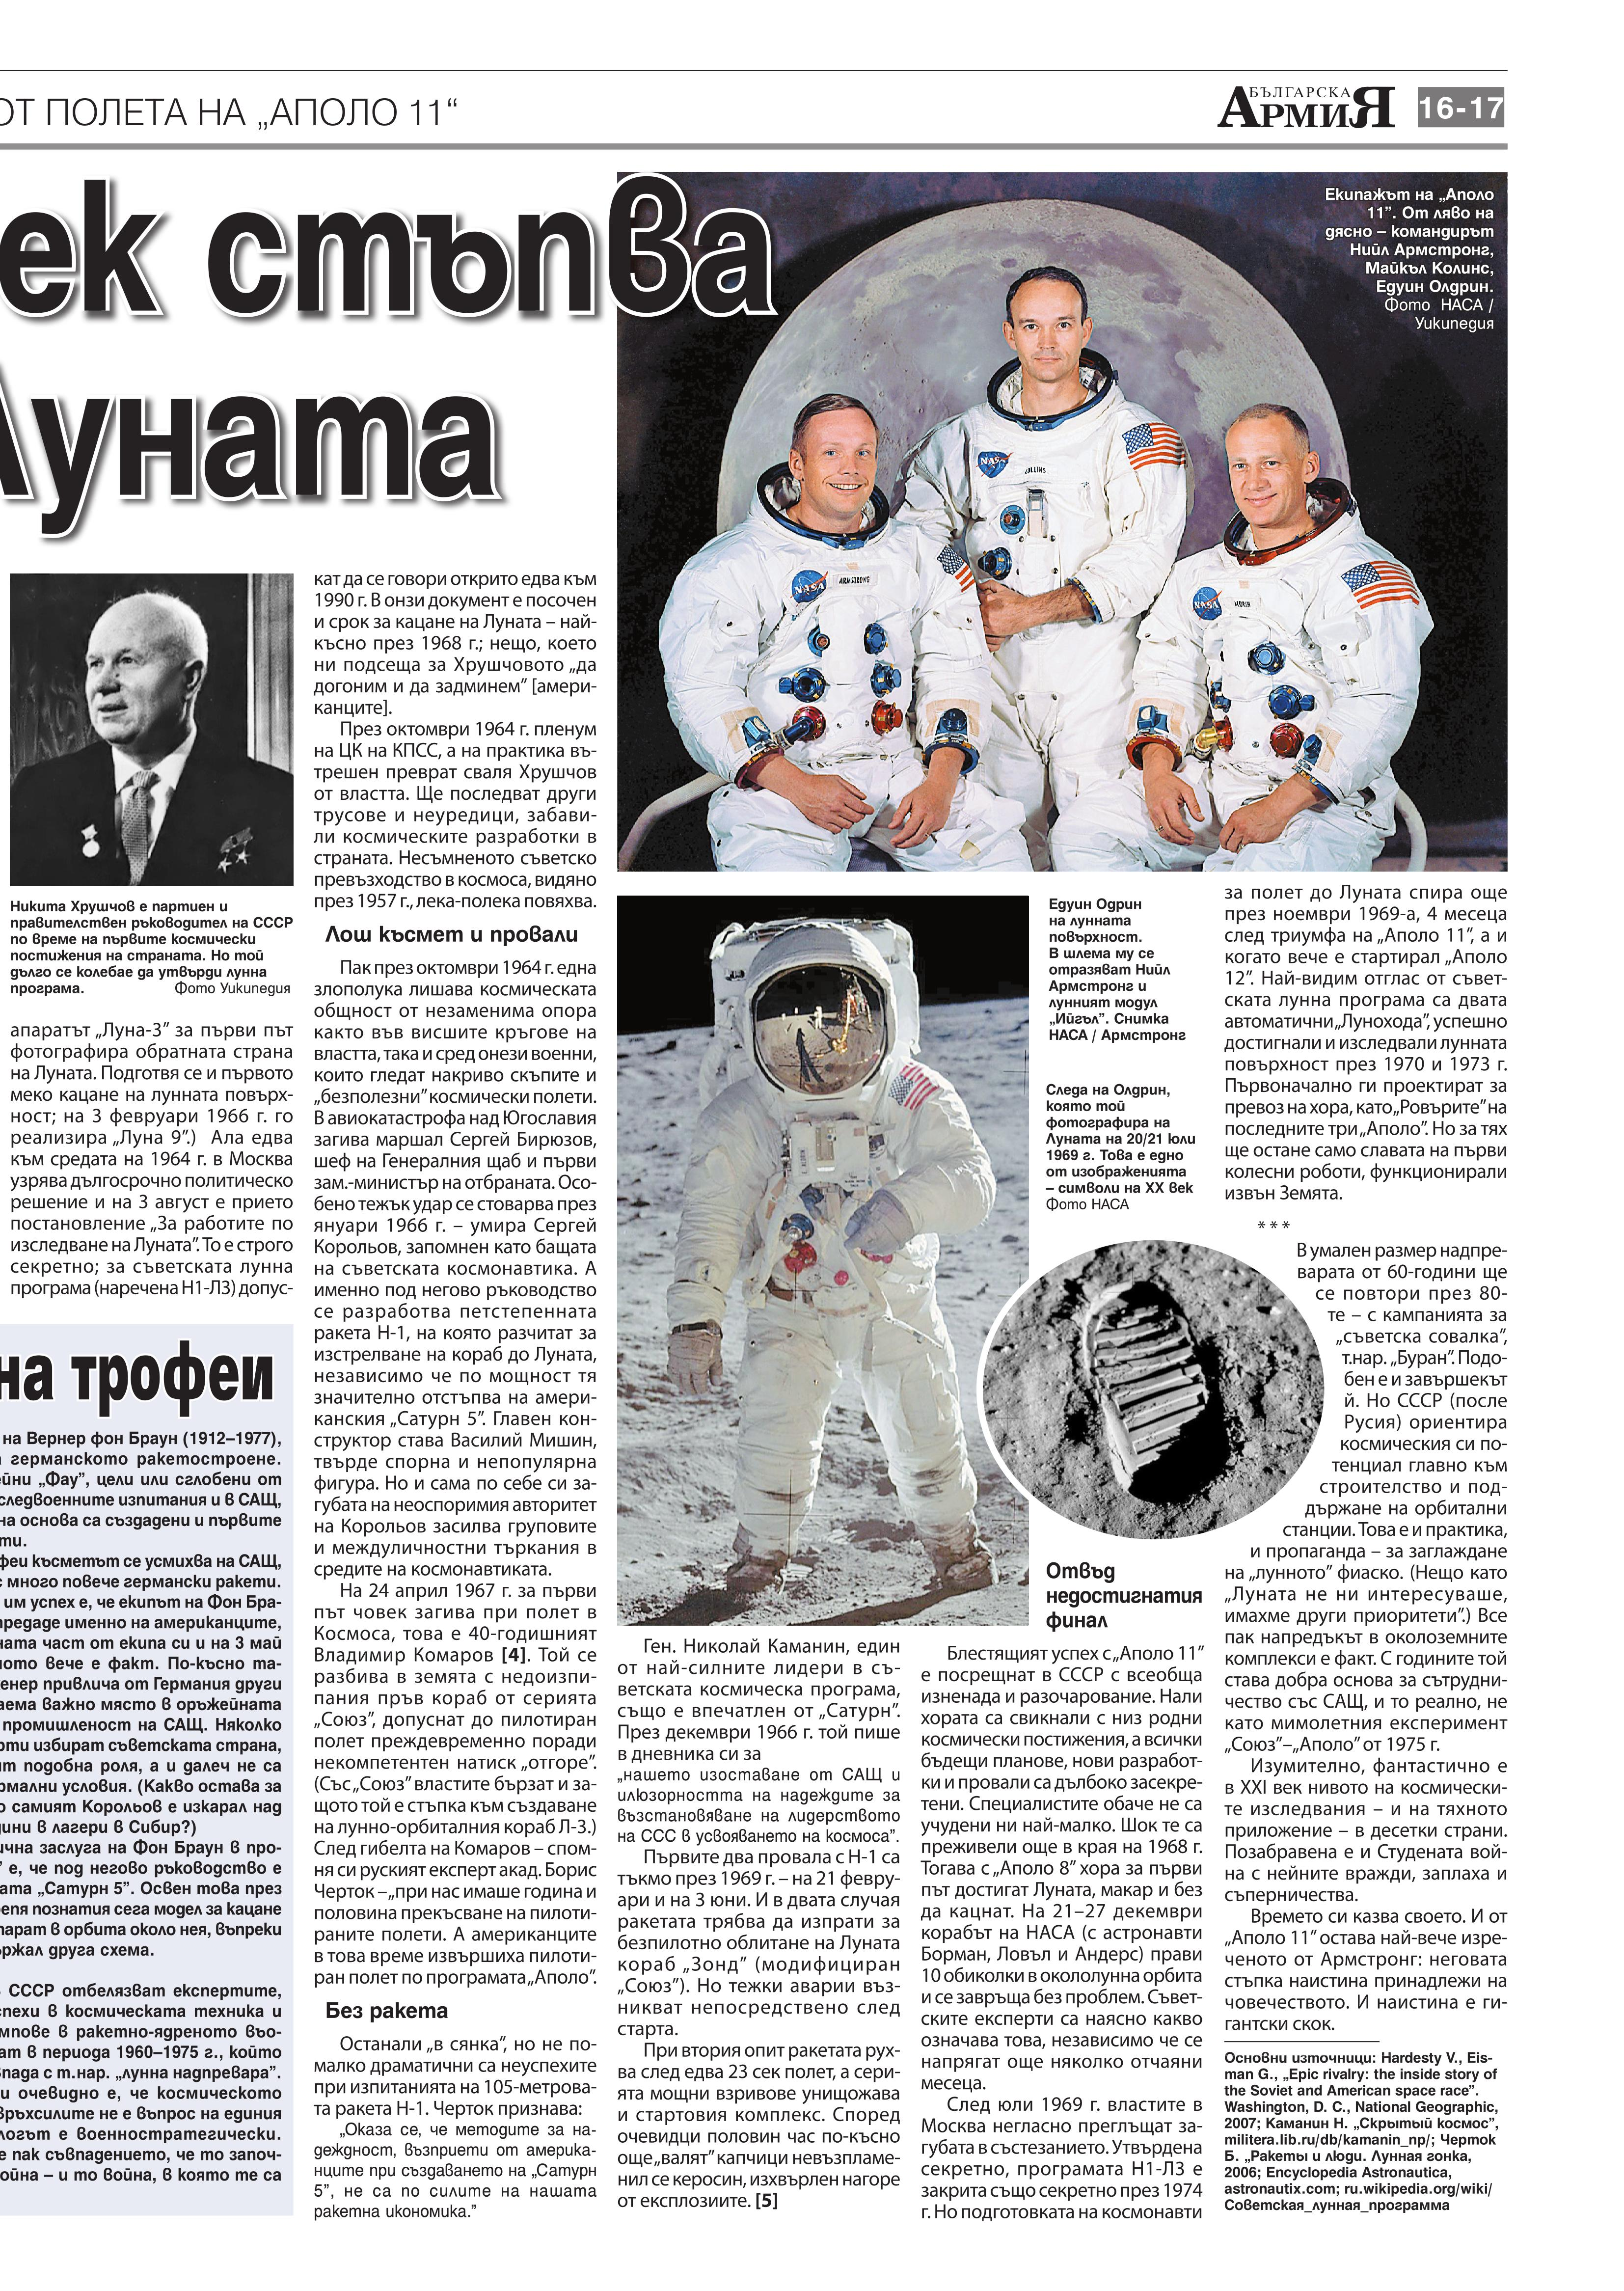 https://armymedia.bg/wp-content/uploads/2015/06/17.page1_-103.jpg